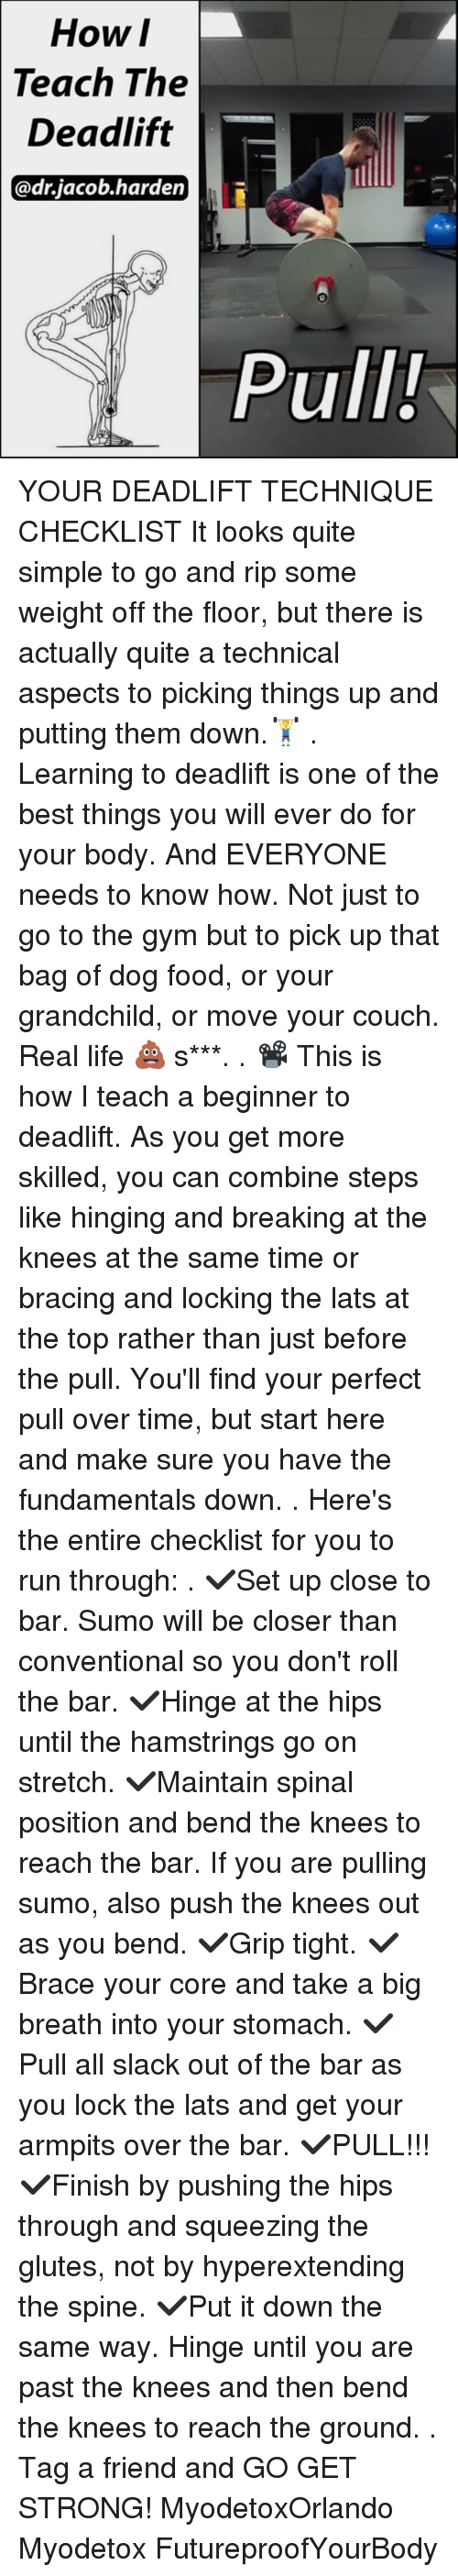 armpits: How  I  The  Teach Deadlift  @drjacob harden  Pull! YOUR DEADLIFT TECHNIQUE CHECKLIST It looks quite simple to go and rip some weight off the floor, but there is actually quite a technical aspects to picking things up and putting them down.🏋 . Learning to deadlift is one of the best things you will ever do for your body. And EVERYONE needs to know how. Not just to go to the gym but to pick up that bag of dog food, or your grandchild, or move your couch. Real life 💩 s***. . 📽 This is how I teach a beginner to deadlift. As you get more skilled, you can combine steps like hinging and breaking at the knees at the same time or bracing and locking the lats at the top rather than just before the pull. You'll find your perfect pull over time, but start here and make sure you have the fundamentals down. . Here's the entire checklist for you to run through: . ✔Set up close to bar. Sumo will be closer than conventional so you don't roll the bar. ✔Hinge at the hips until the hamstrings go on stretch. ✔Maintain spinal position and bend the knees to reach the bar. If you are pulling sumo, also push the knees out as you bend. ✔Grip tight. ✔Brace your core and take a big breath into your stomach. ✔Pull all slack out of the bar as you lock the lats and get your armpits over the bar. ✔PULL!!! ✔Finish by pushing the hips through and squeezing the glutes, not by hyperextending the spine. ✔Put it down the same way. Hinge until you are past the knees and then bend the knees to reach the ground. . Tag a friend and GO GET STRONG! MyodetoxOrlando Myodetox FutureproofYourBody